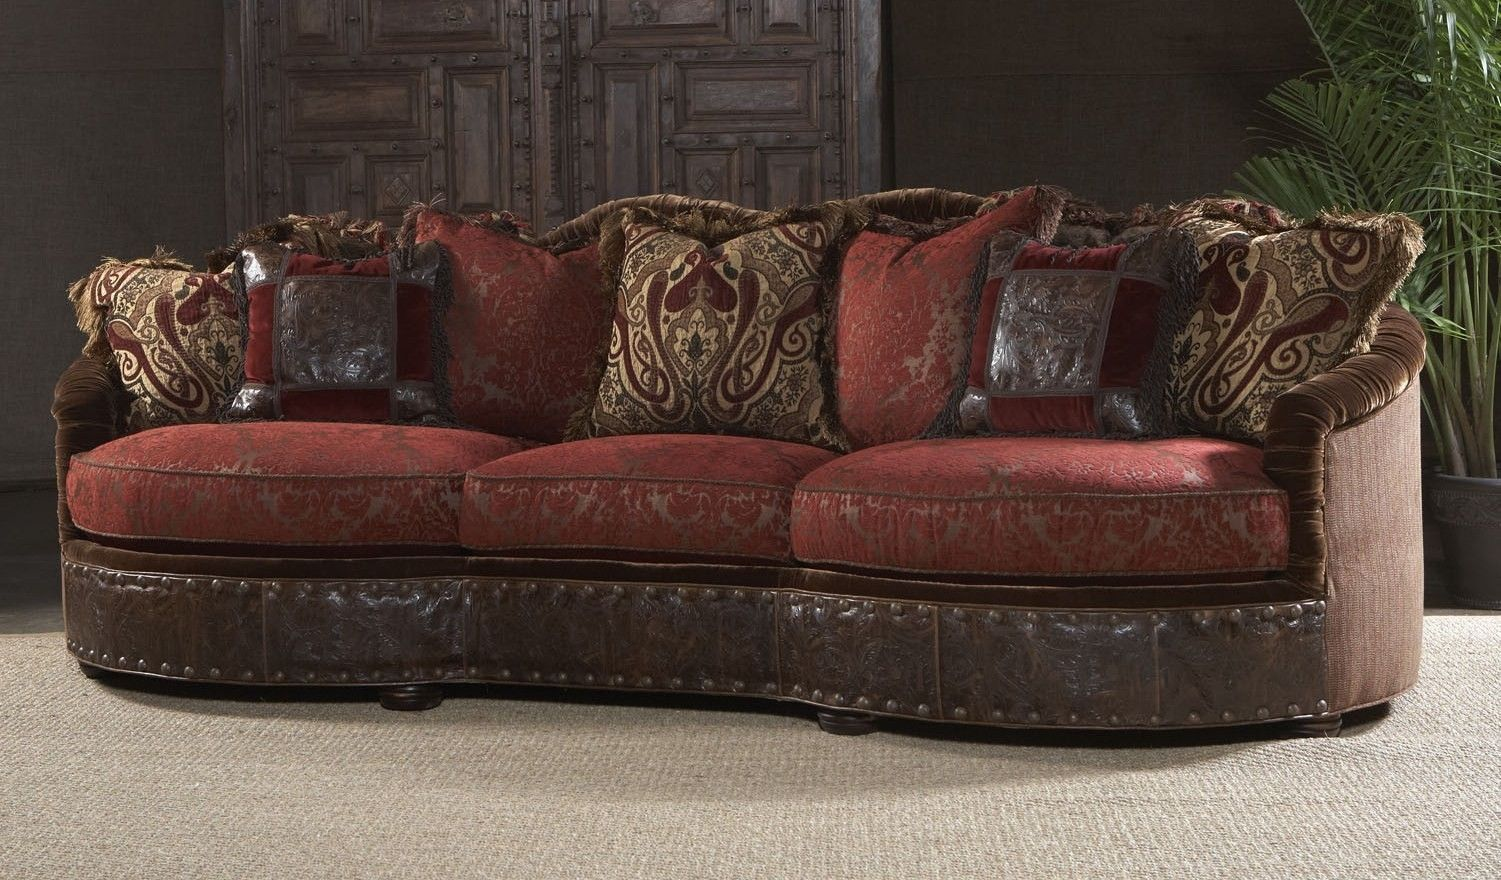 Luxury furniture sofa couch and decorative pillows for Cushions for leather sofas